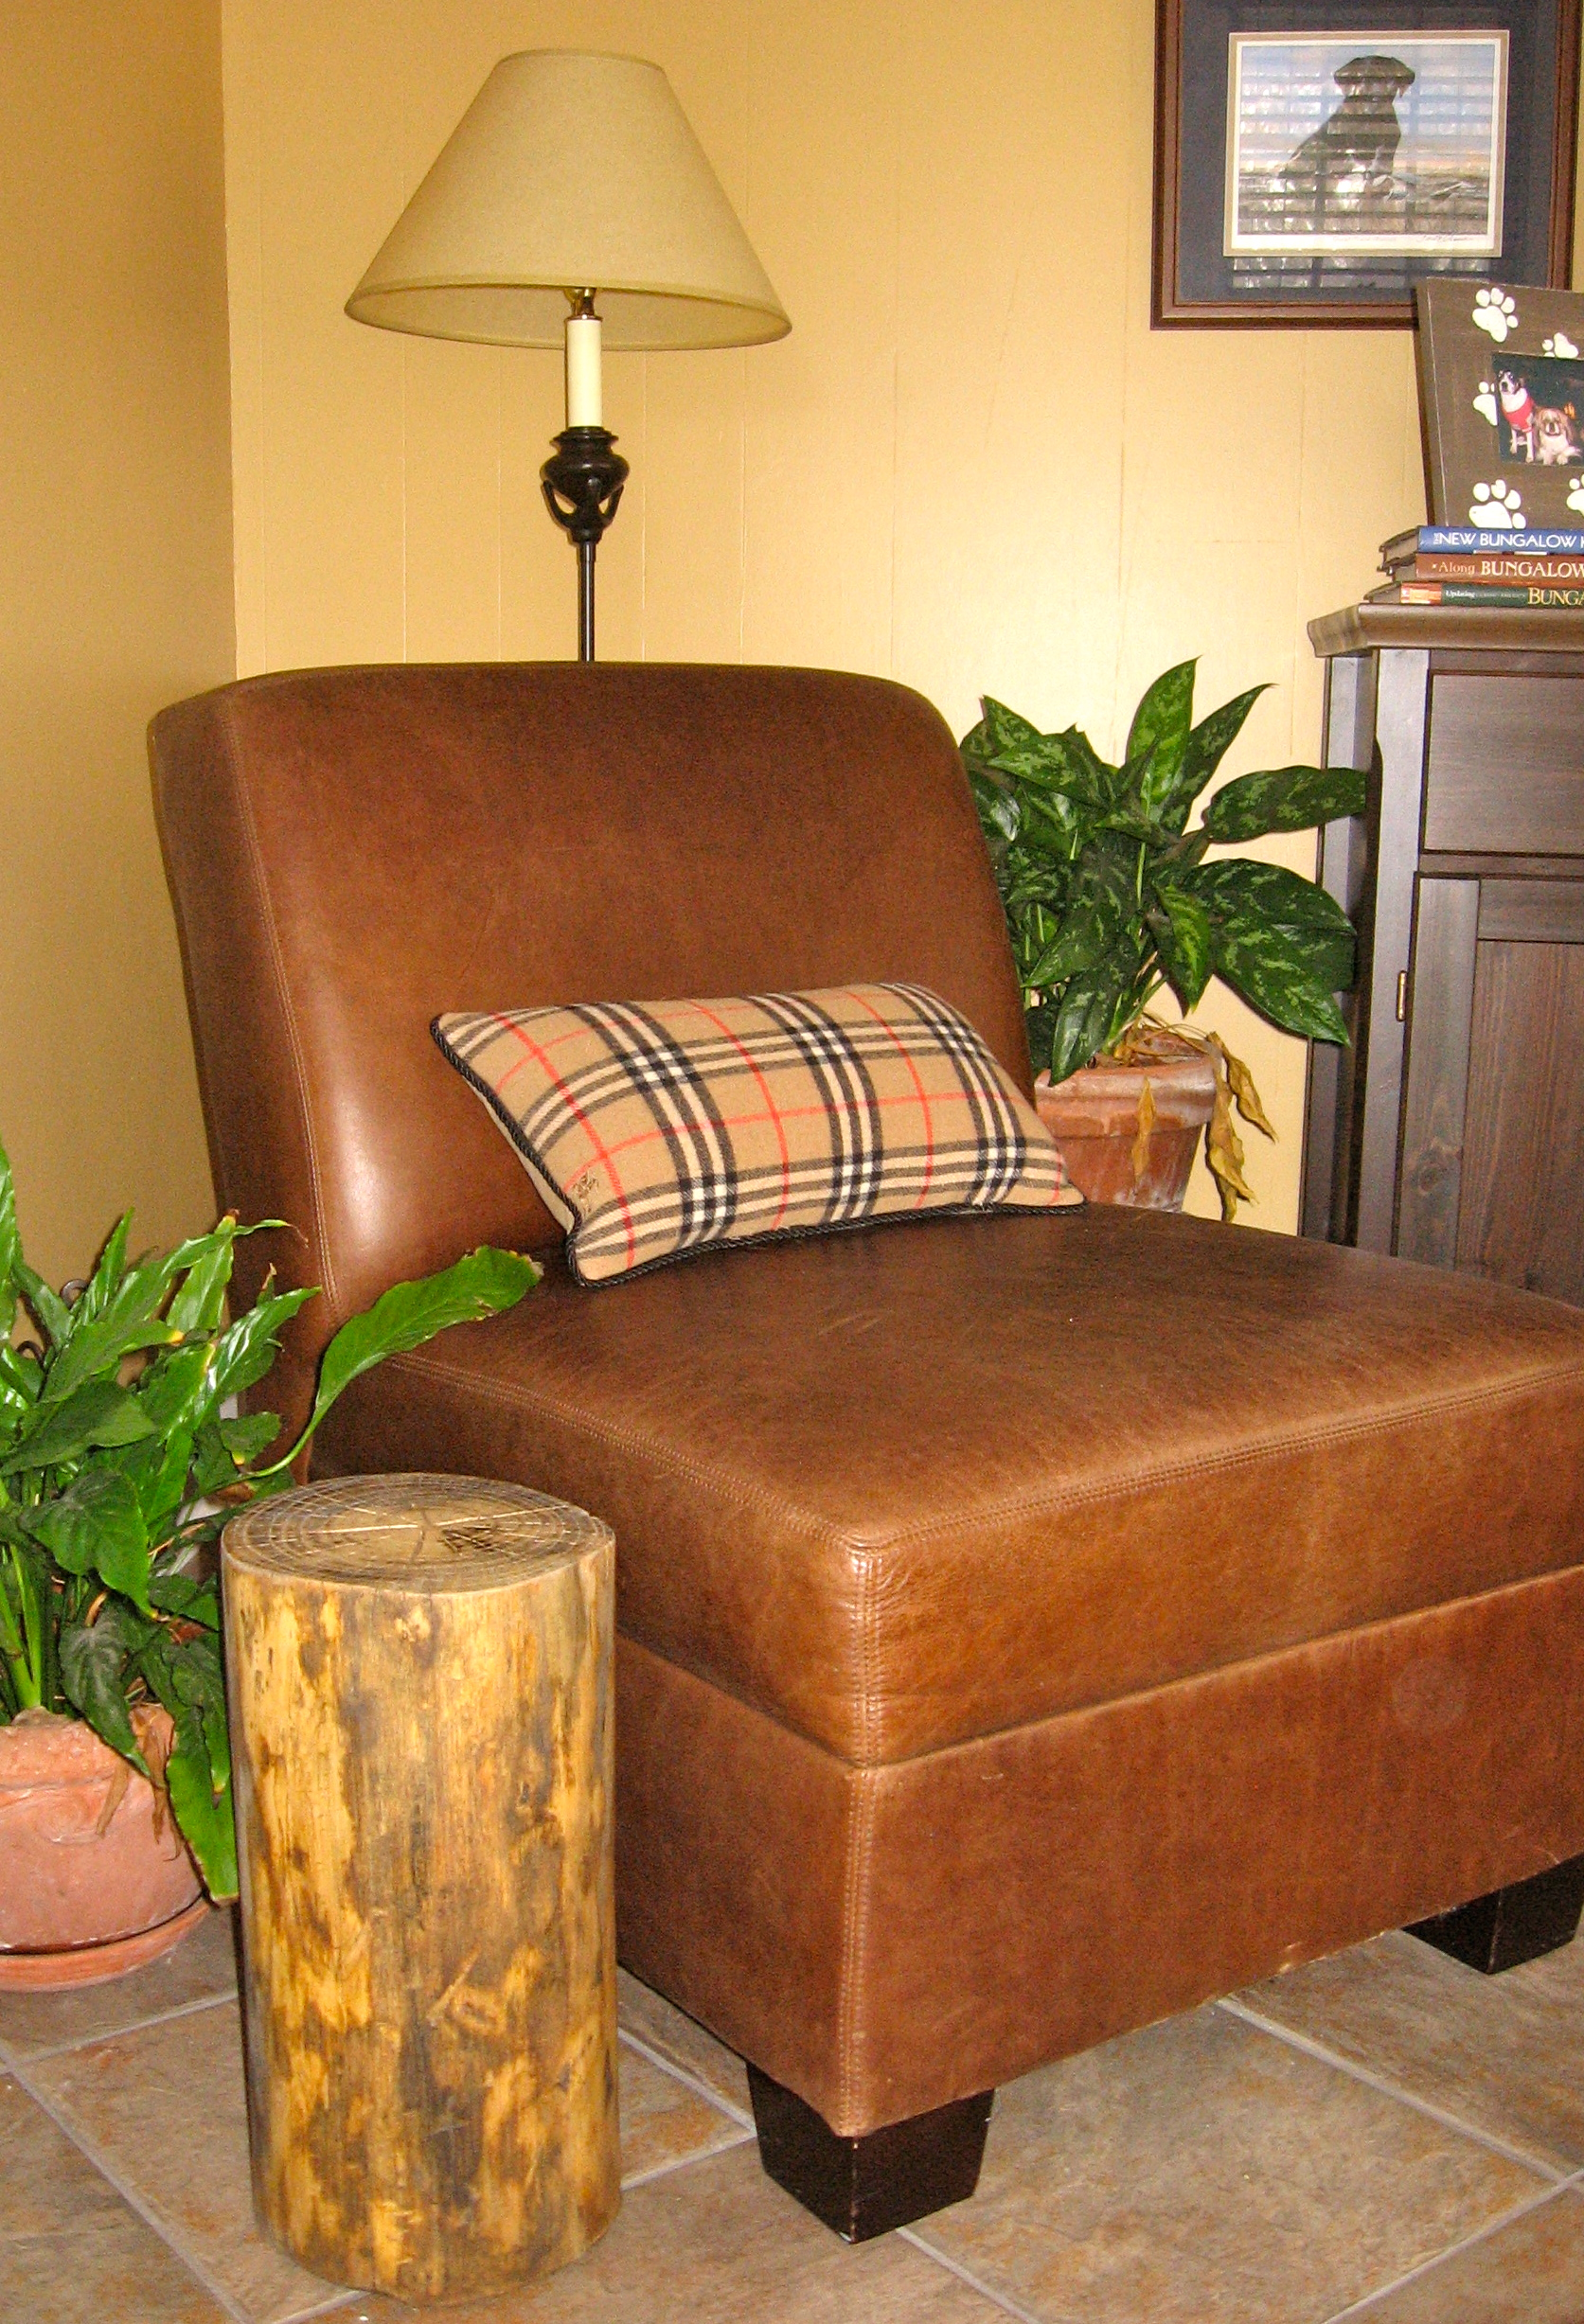 tree trunk stump side table a brown leather corner table with mini pillow a standing lamp